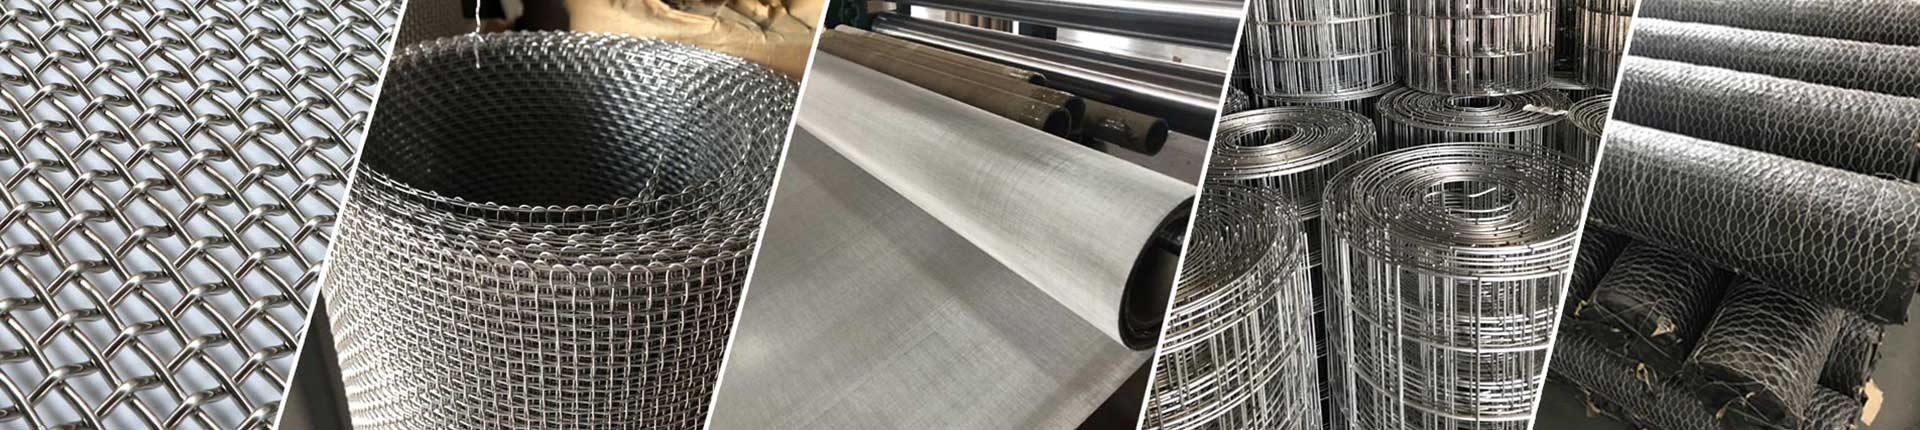 Stainless steel wire mesh and wire mesh deep-processed products